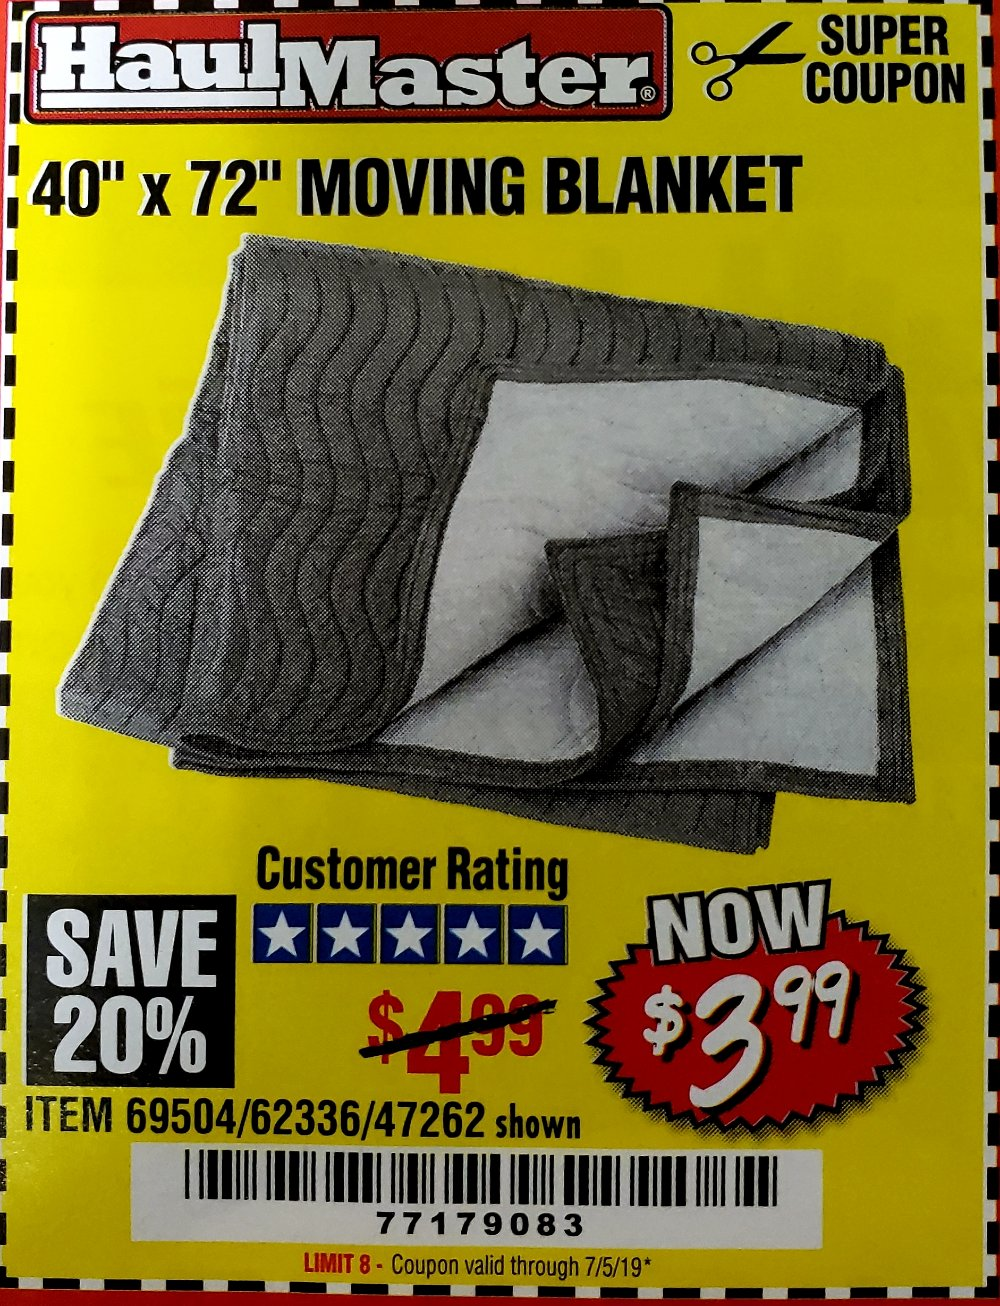 Harbor Freight Coupon, HF Coupons - 40X72 MOVING BLANKET